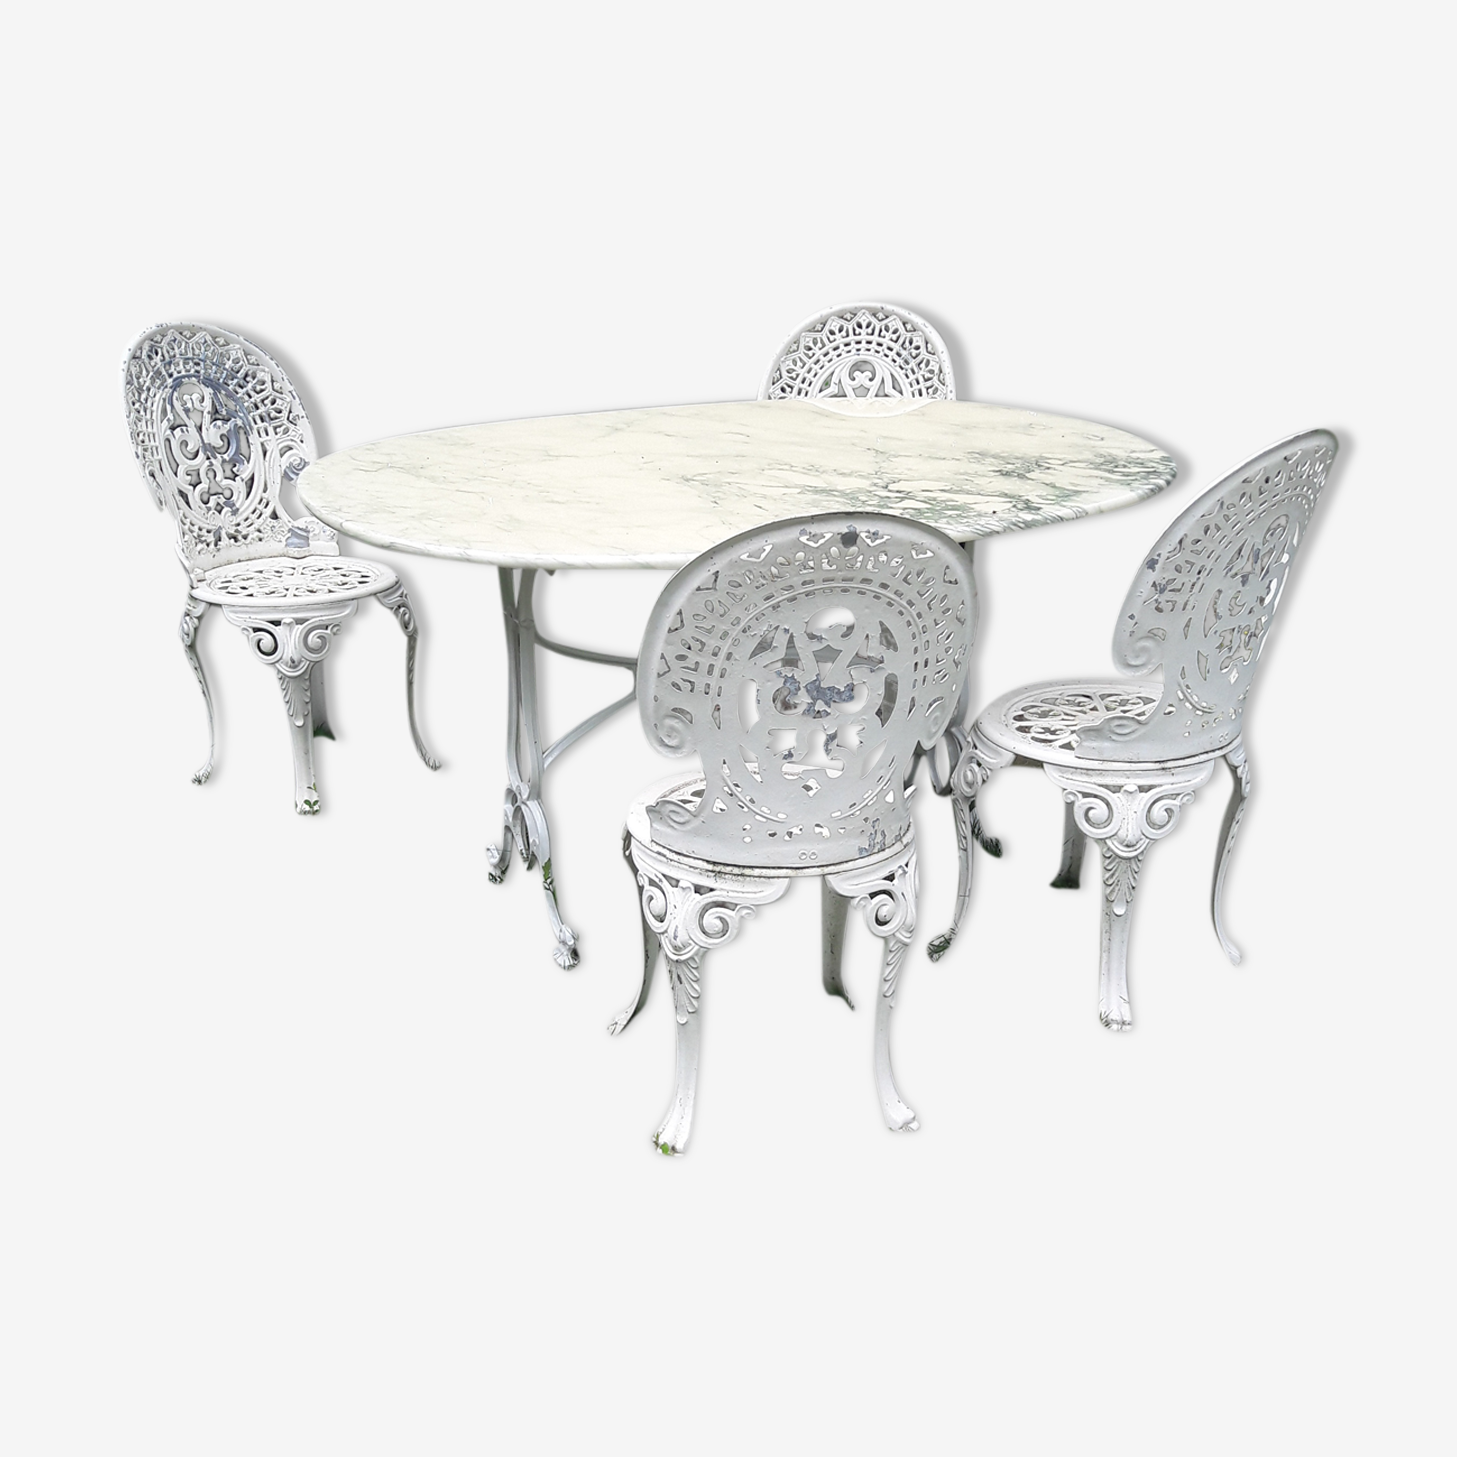 Cast iron and marble garden furniture set